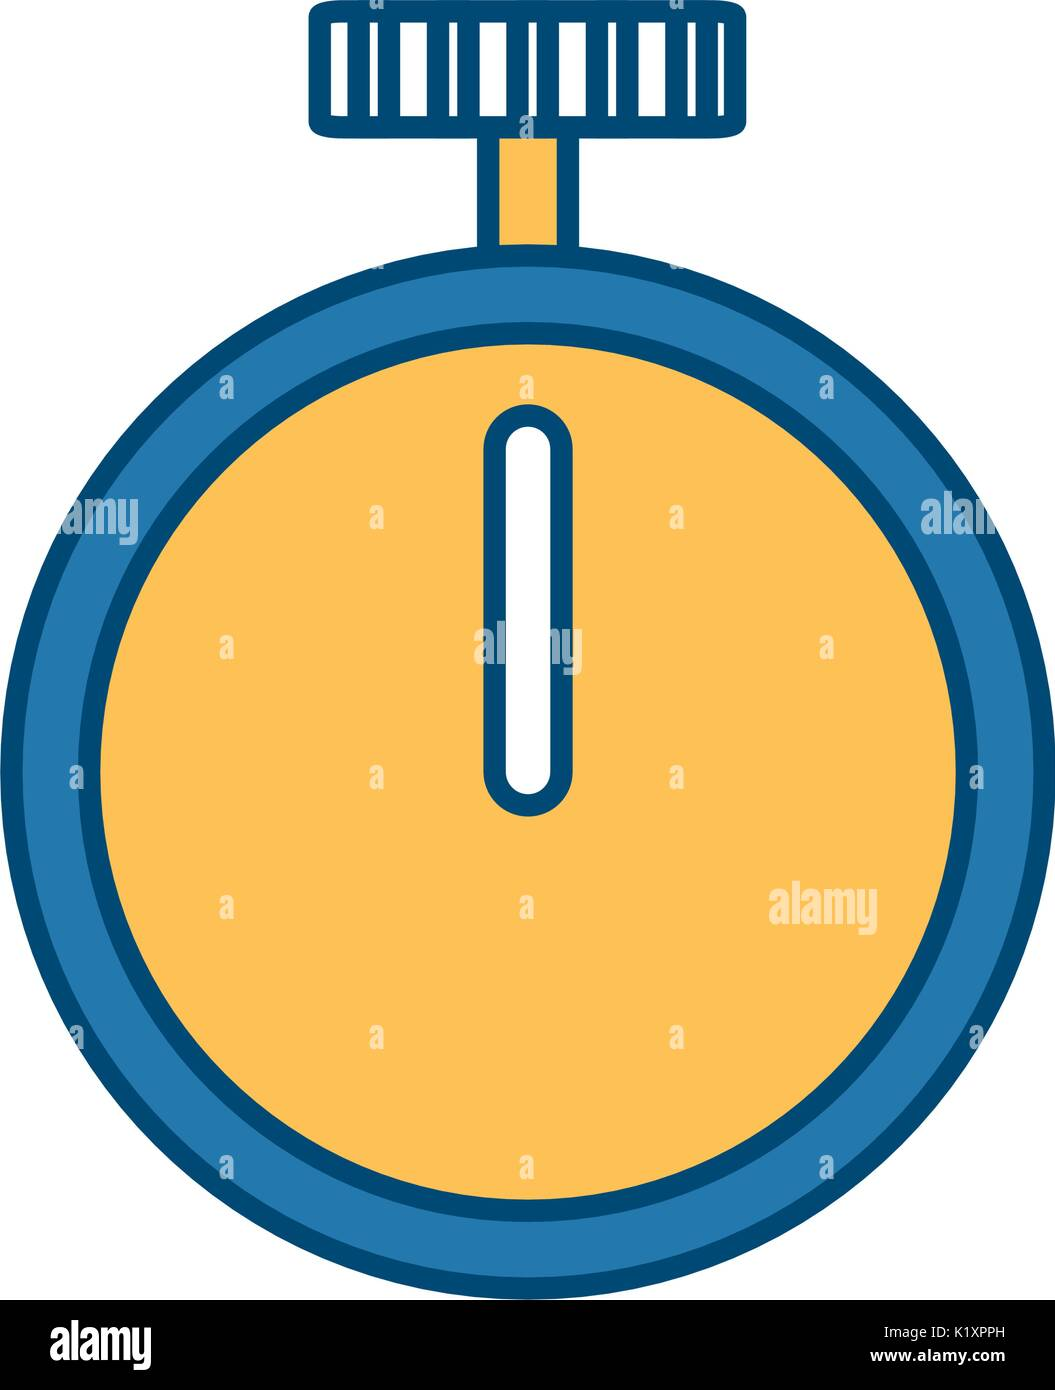 time count fast delivery and accuracy concept - Stock Image